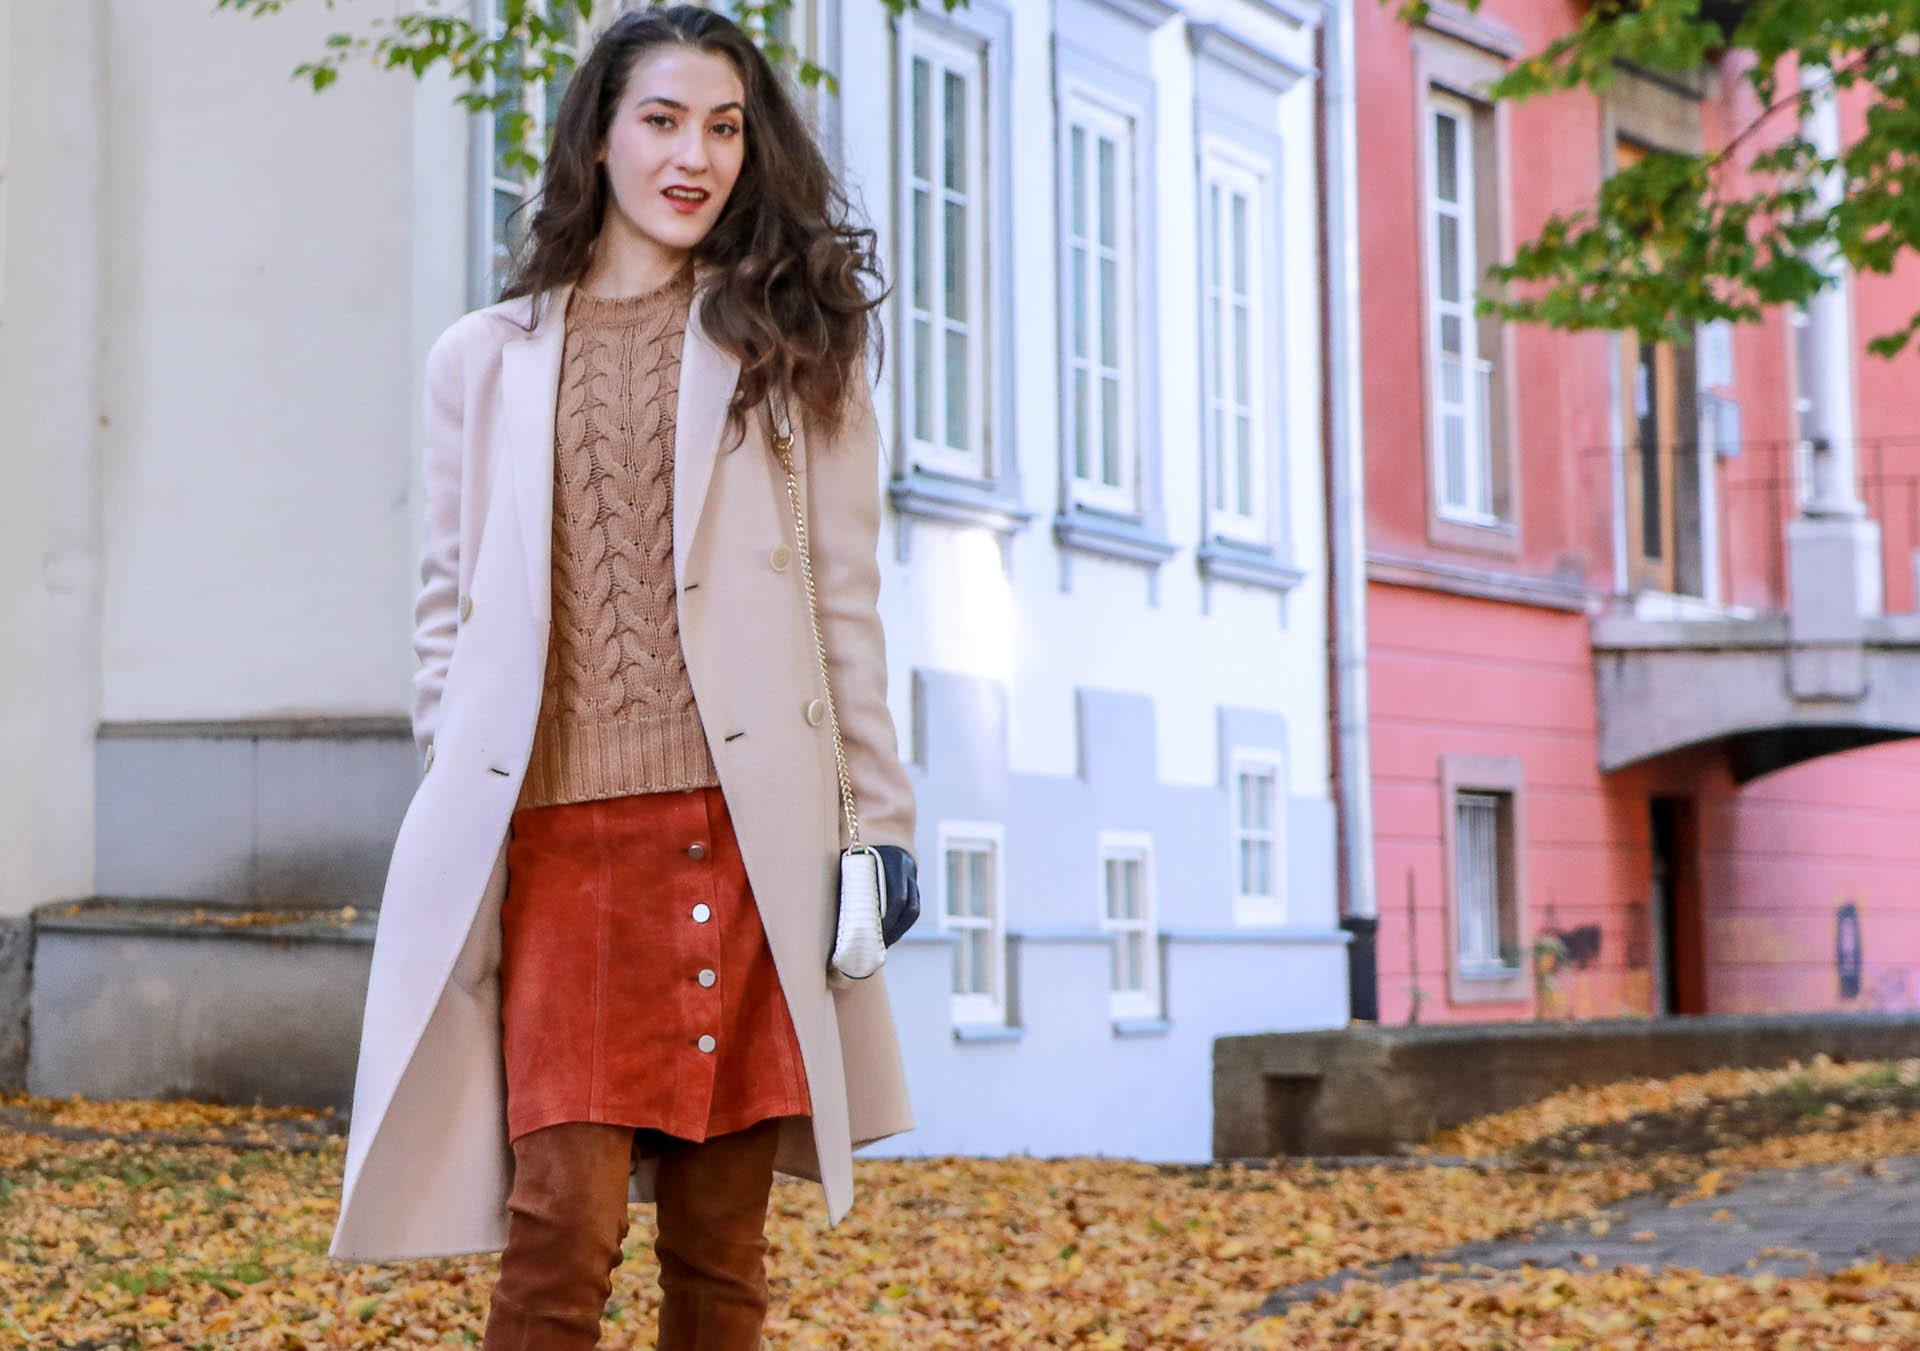 Beautiful Slovenian Fashion Blogger Veronika Lipar of Brunette from Wall wearing Max Mara camel cable knit sweater, front button brown suede skirt, Stuart Weitzman brown over the knee boots, Max Mara coat standing on the leaves